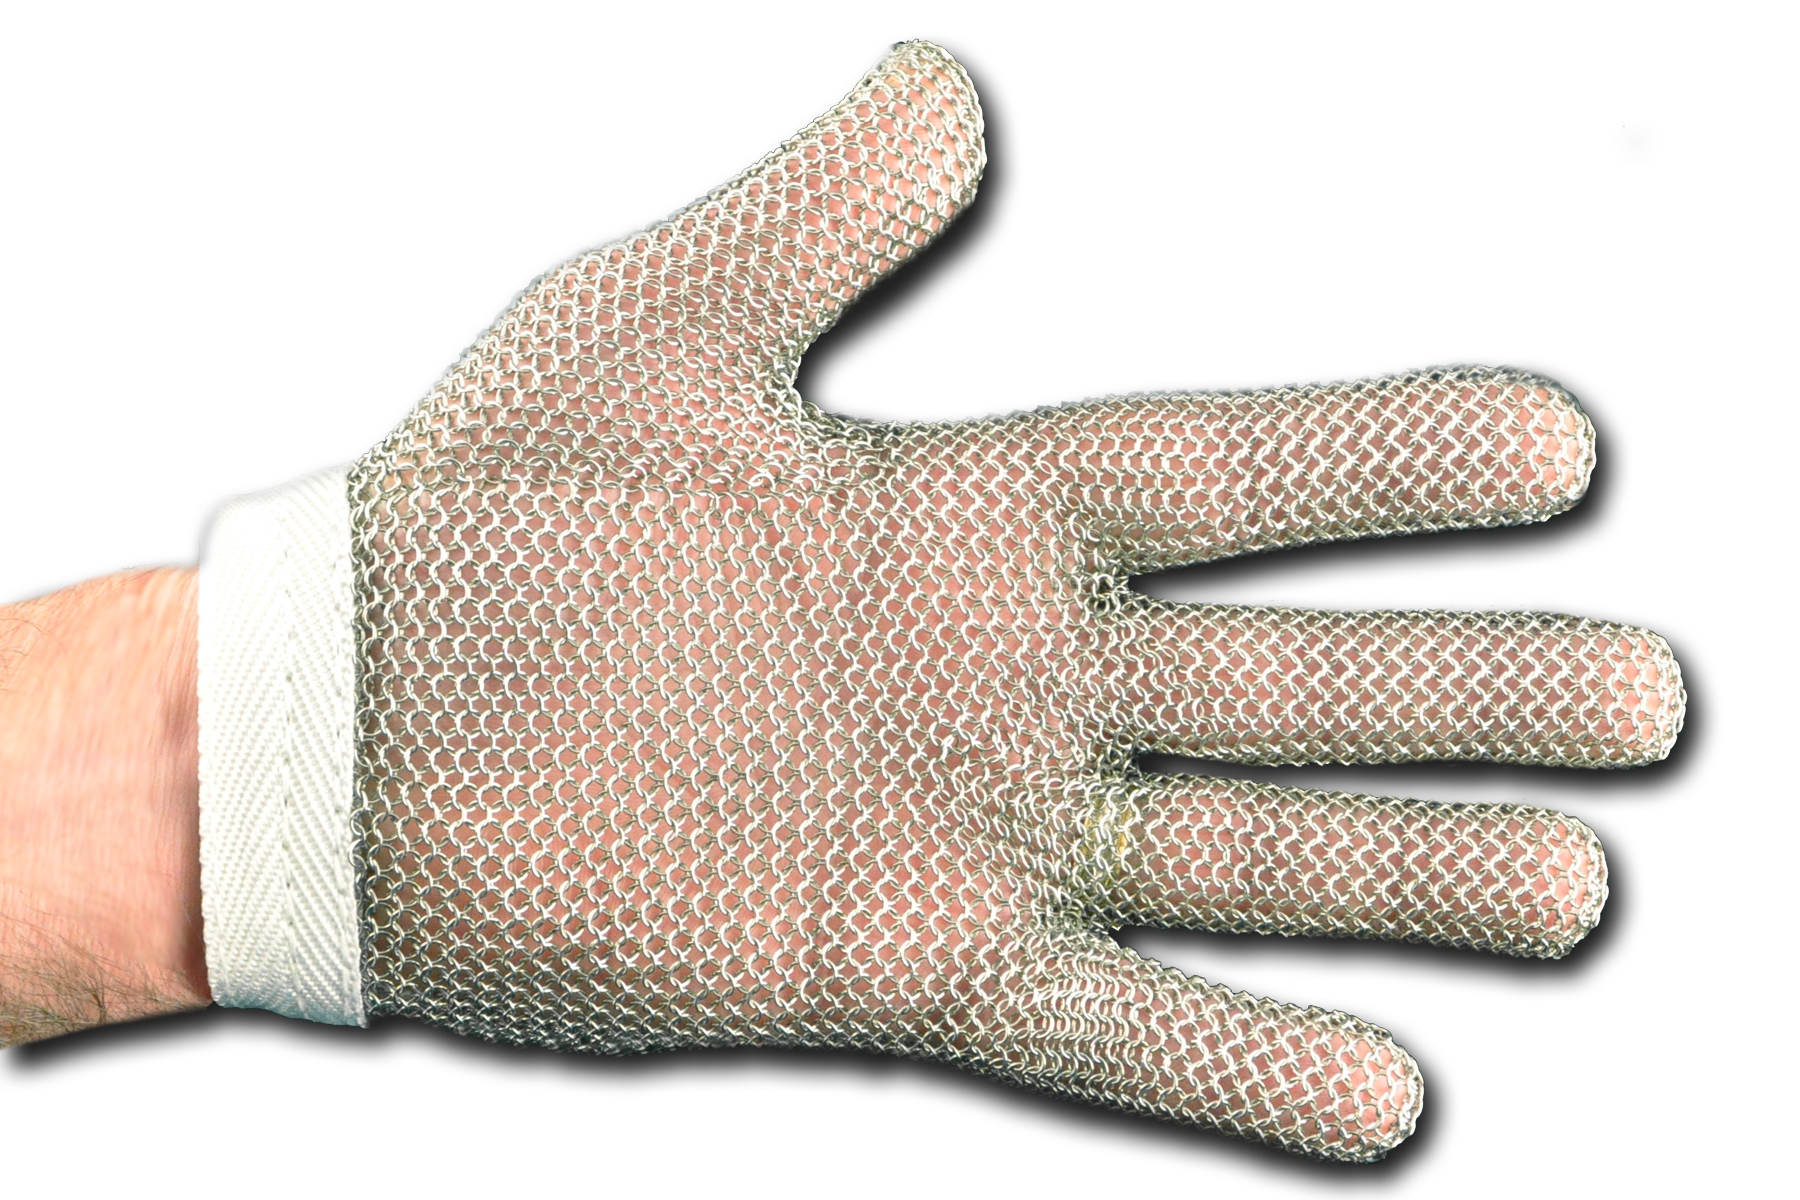 Dexter Russell 82173 protective gloves